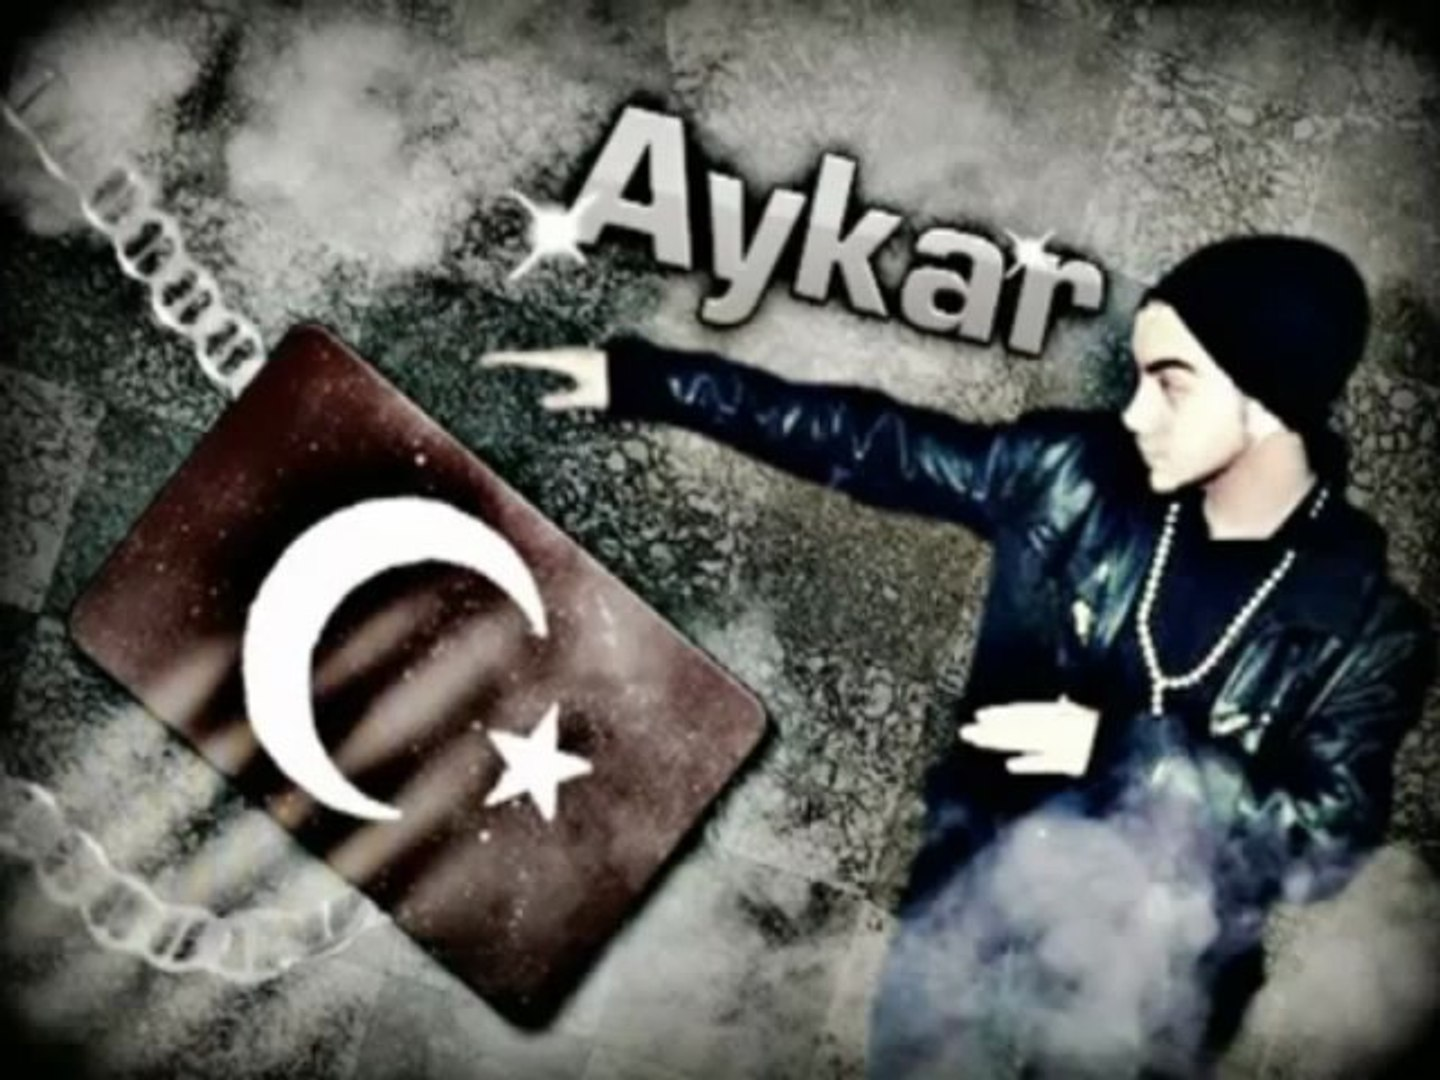 Mc Miko ft Aykar - Ve Ask Bitti 2012 (ft Mc Yusuf)